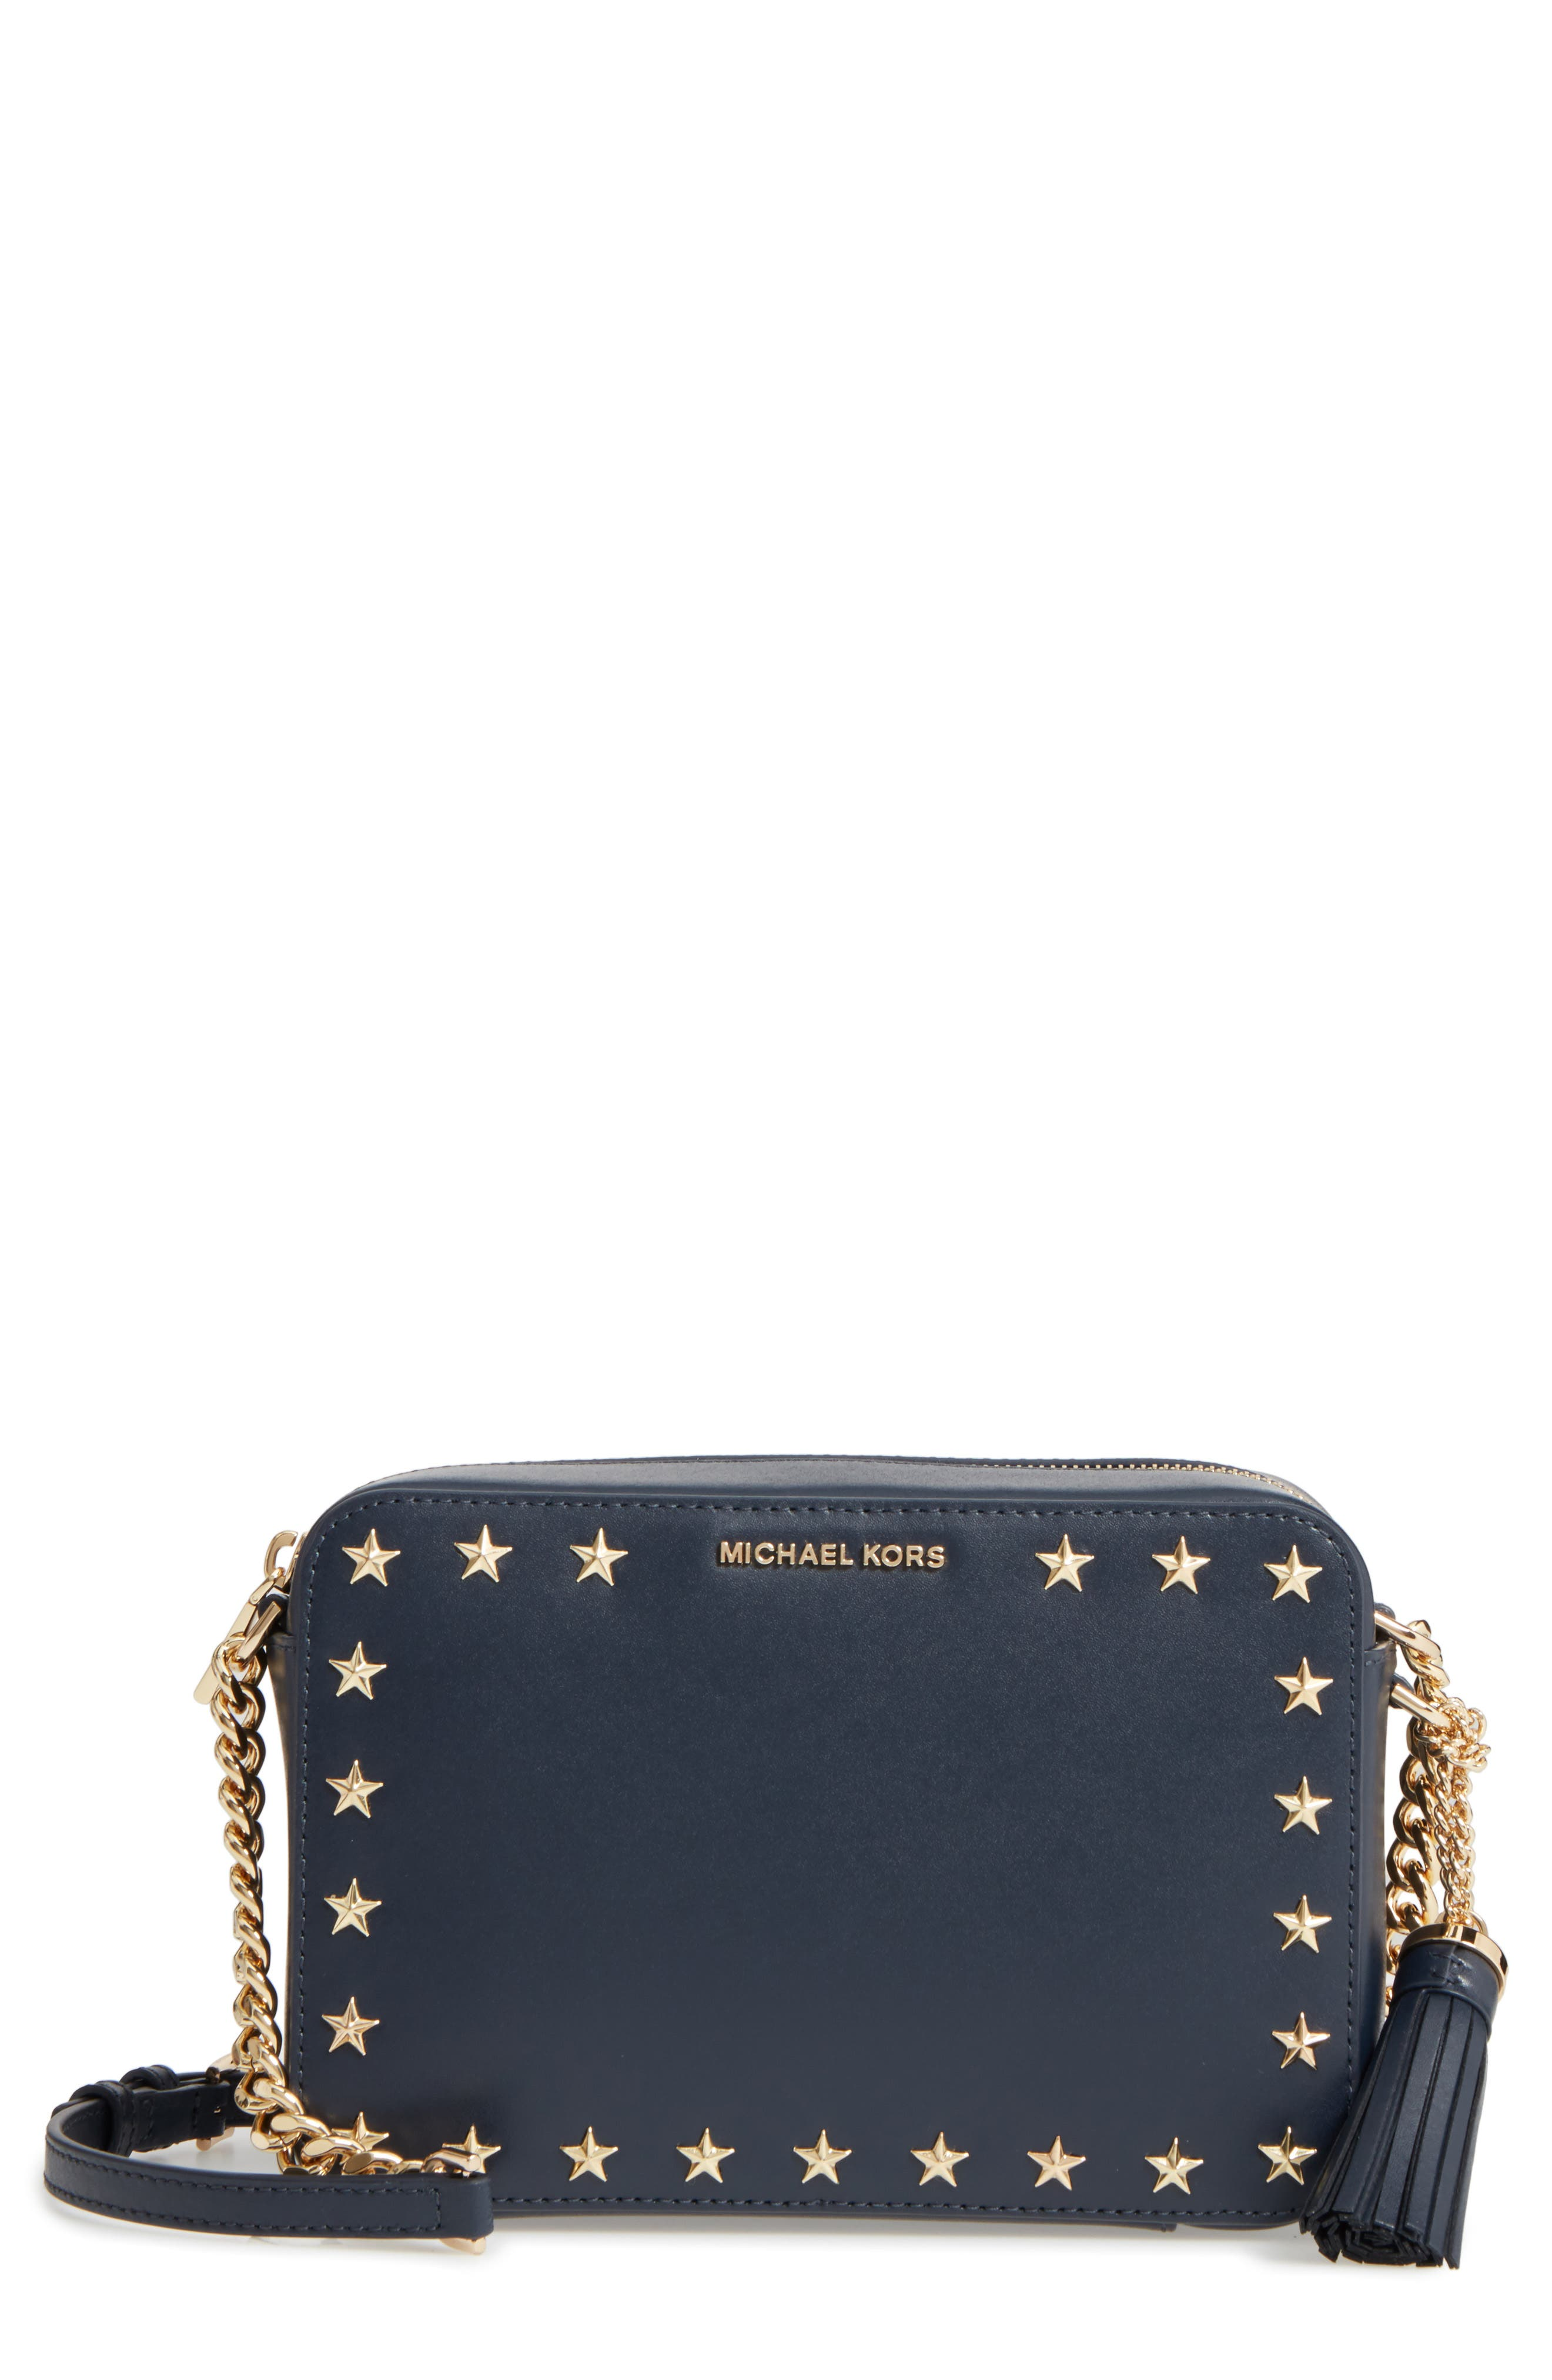 MICHAEL Michael Kors Medium Ginny Star Studded Leather Crossbody Camera Bag